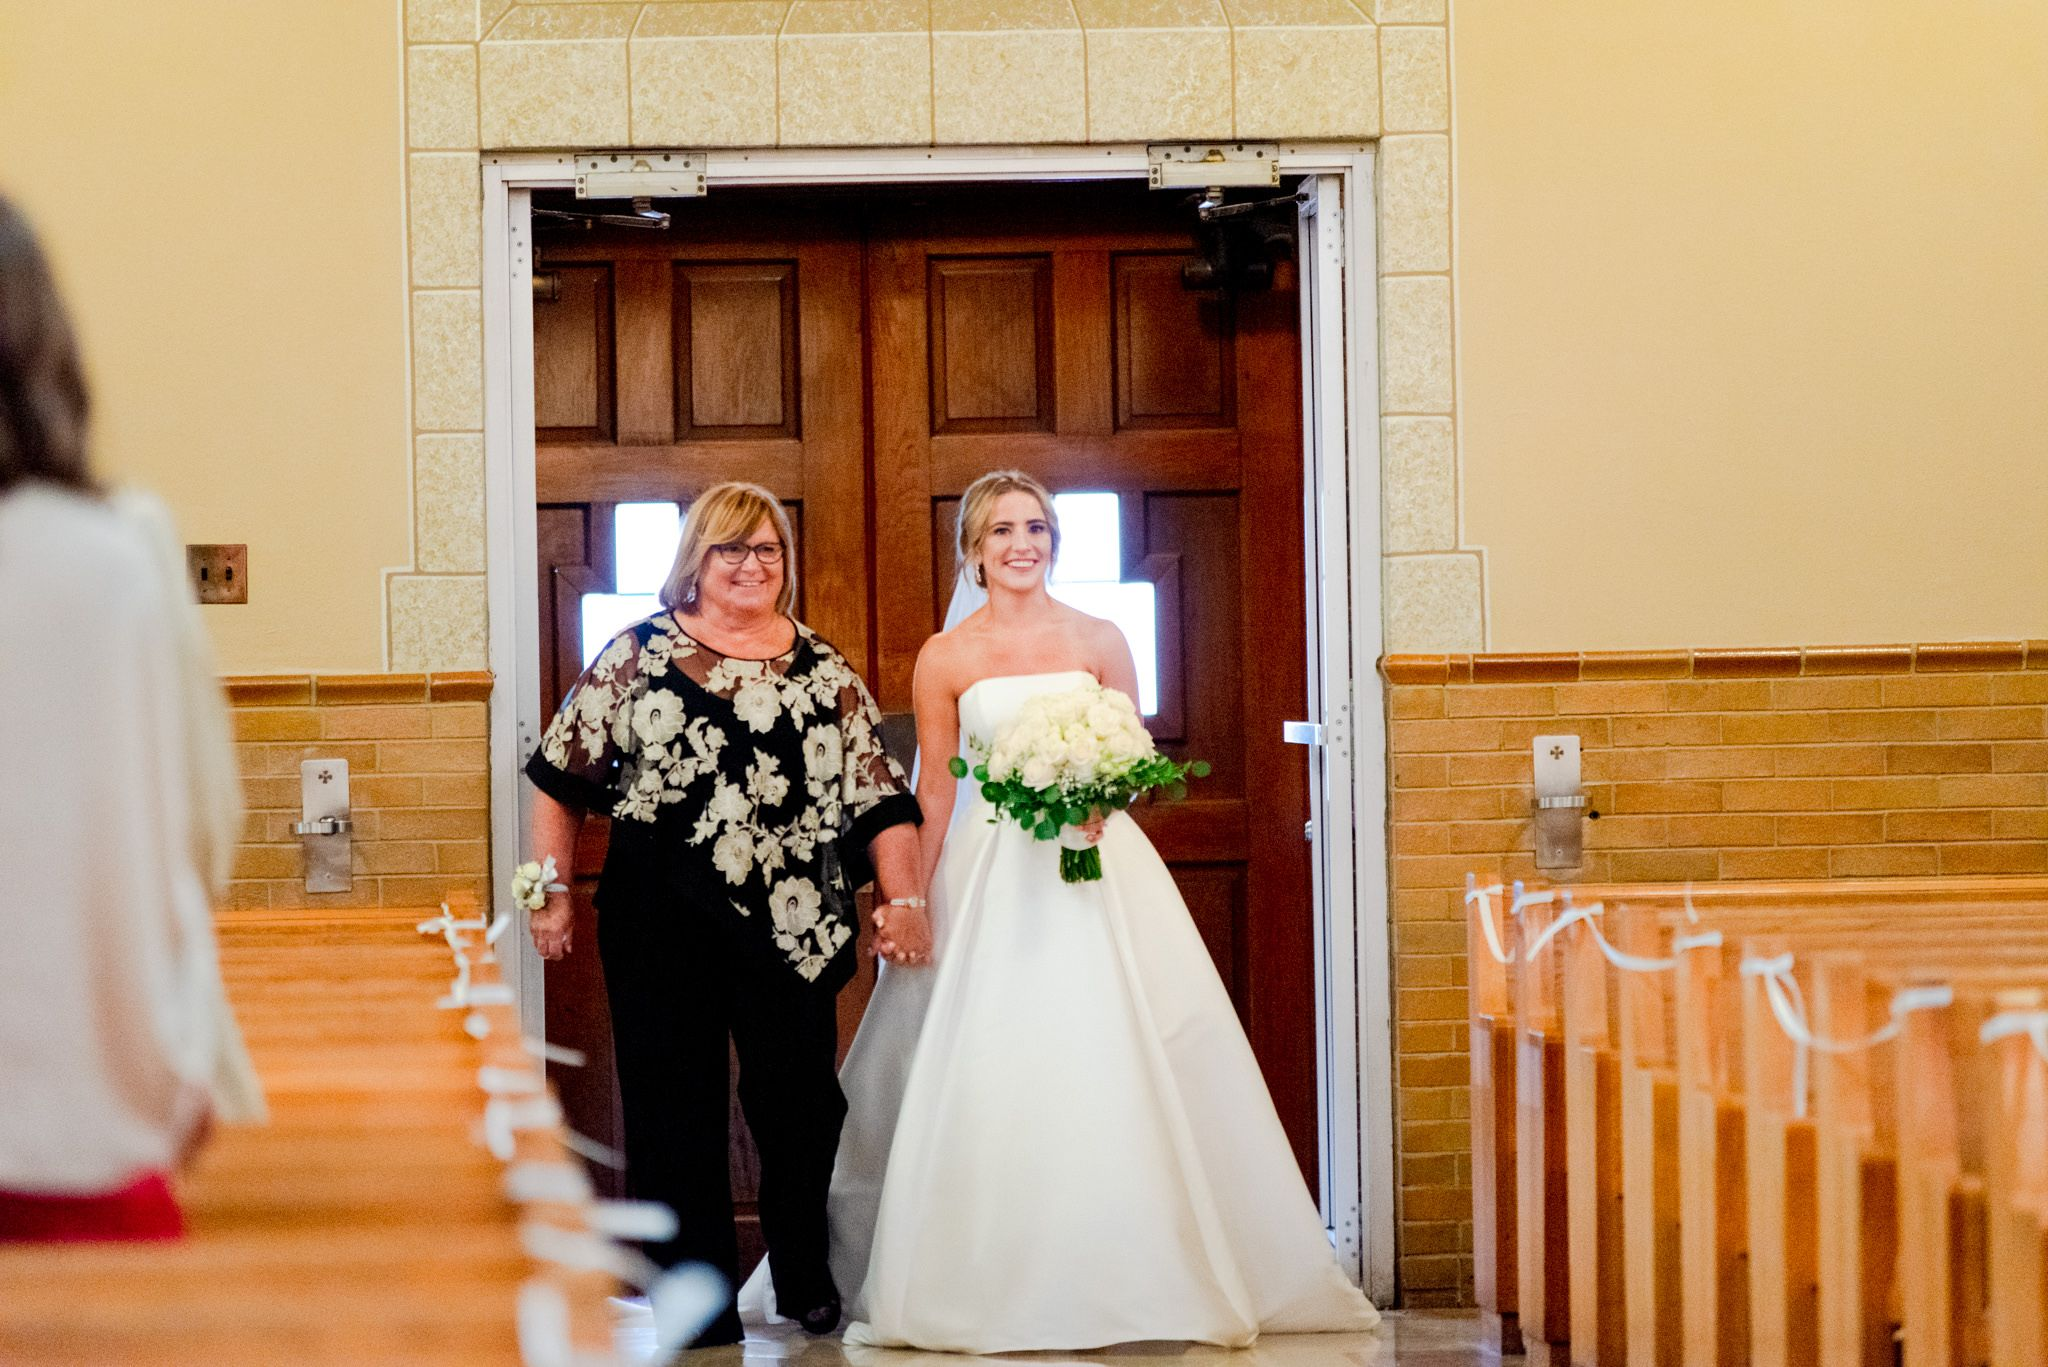 bride and mother of the bride walking down the aisle of the church both smiling and bride holding white bouquet